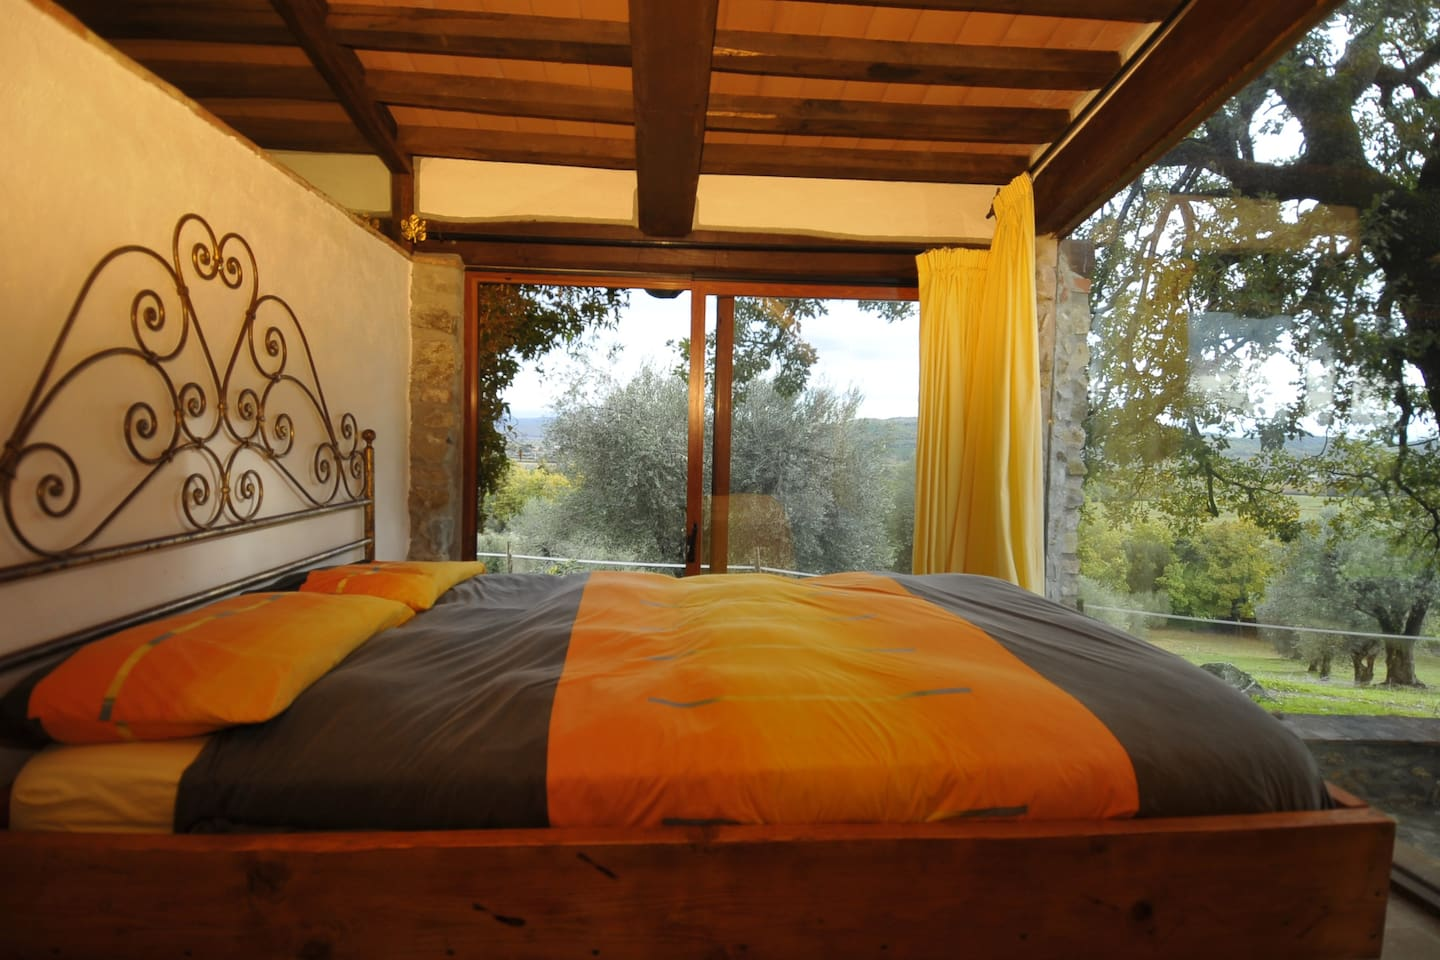 Cottage - bedroom with view on the nature